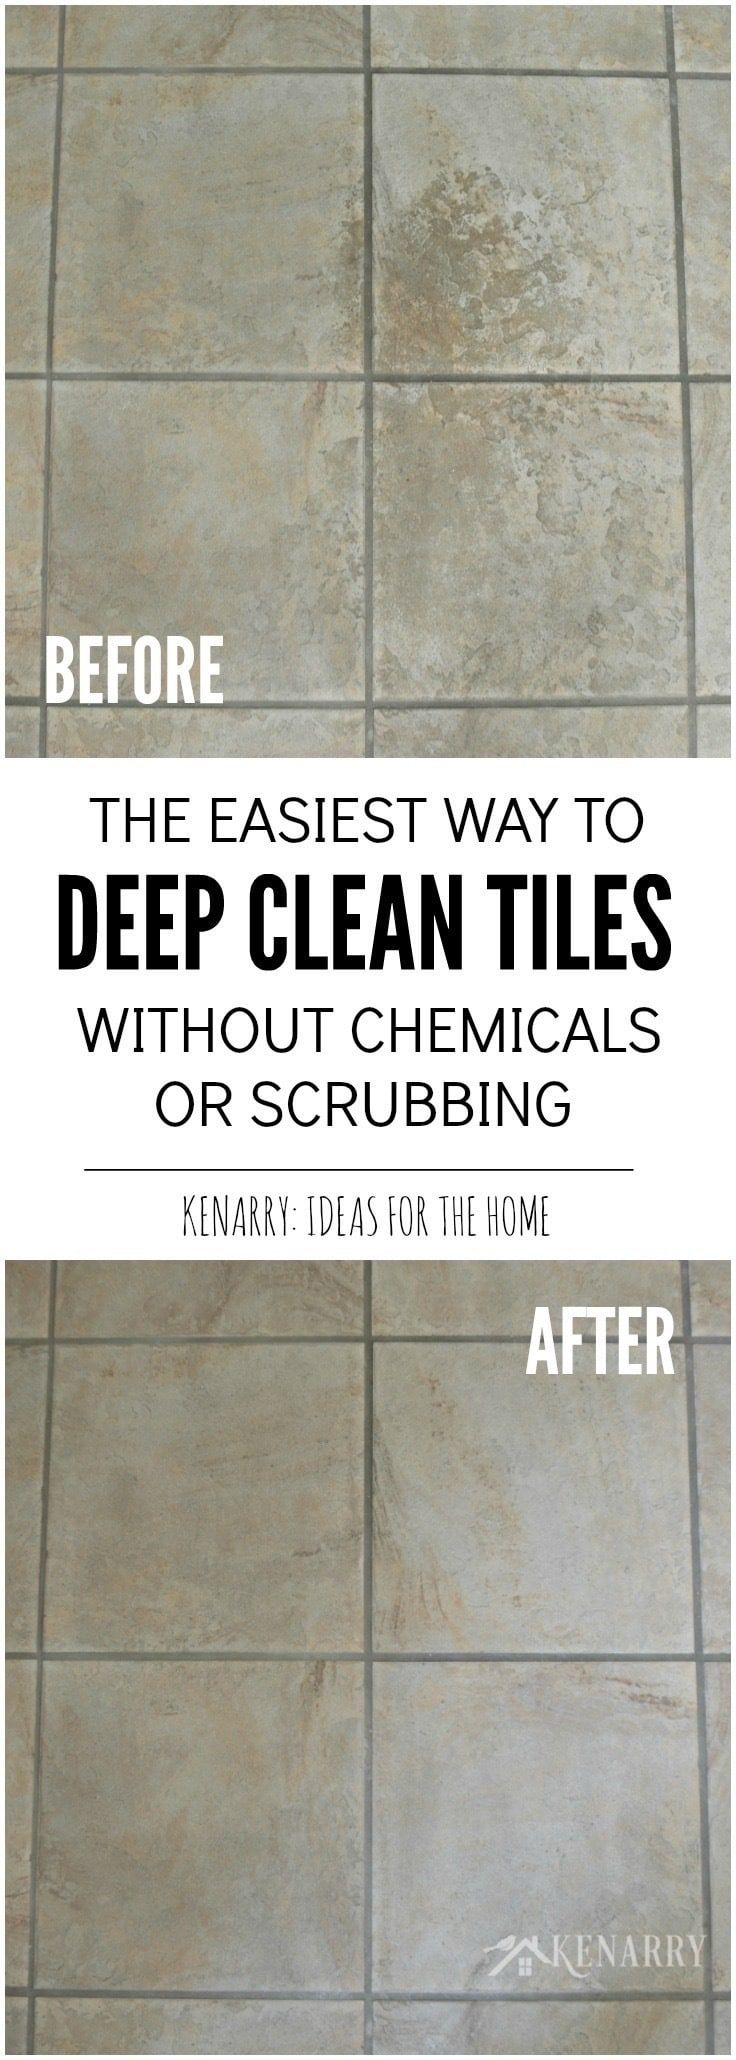 Clean tile floors easily without chemicals or scrubbing tile i love this easy idea for how to clean tile floors quickly and easily who knew you could get ceramic tiles deeply clean without chemicals or scrubbing on dailygadgetfo Image collections